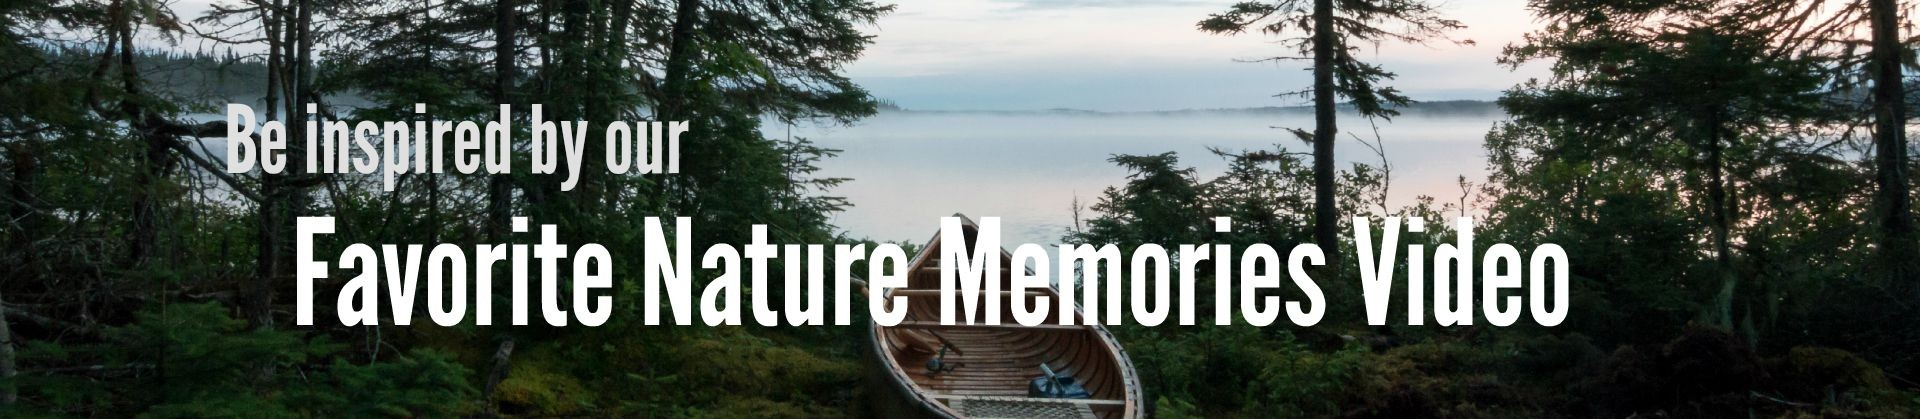 Website-Slider-Favorite-Nature-Memories-Video-1920x419